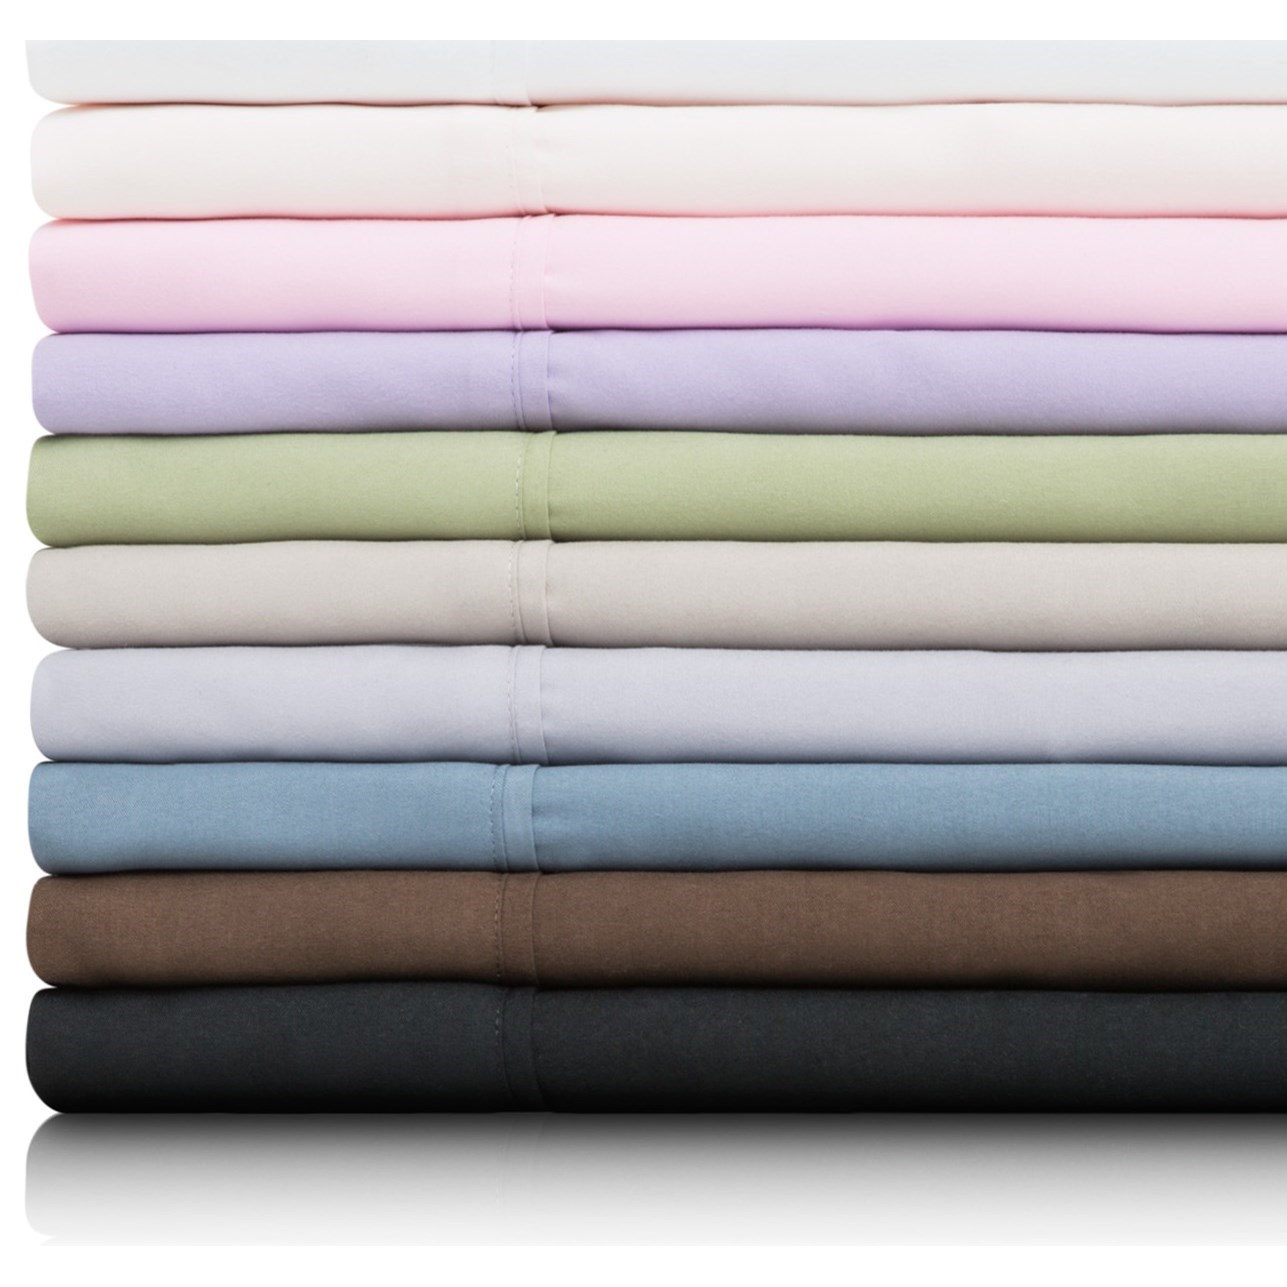 Brushed Microfiber Full Woven™ Brushed Microfiber Sheet Set by Malouf at Northeast Factory Direct